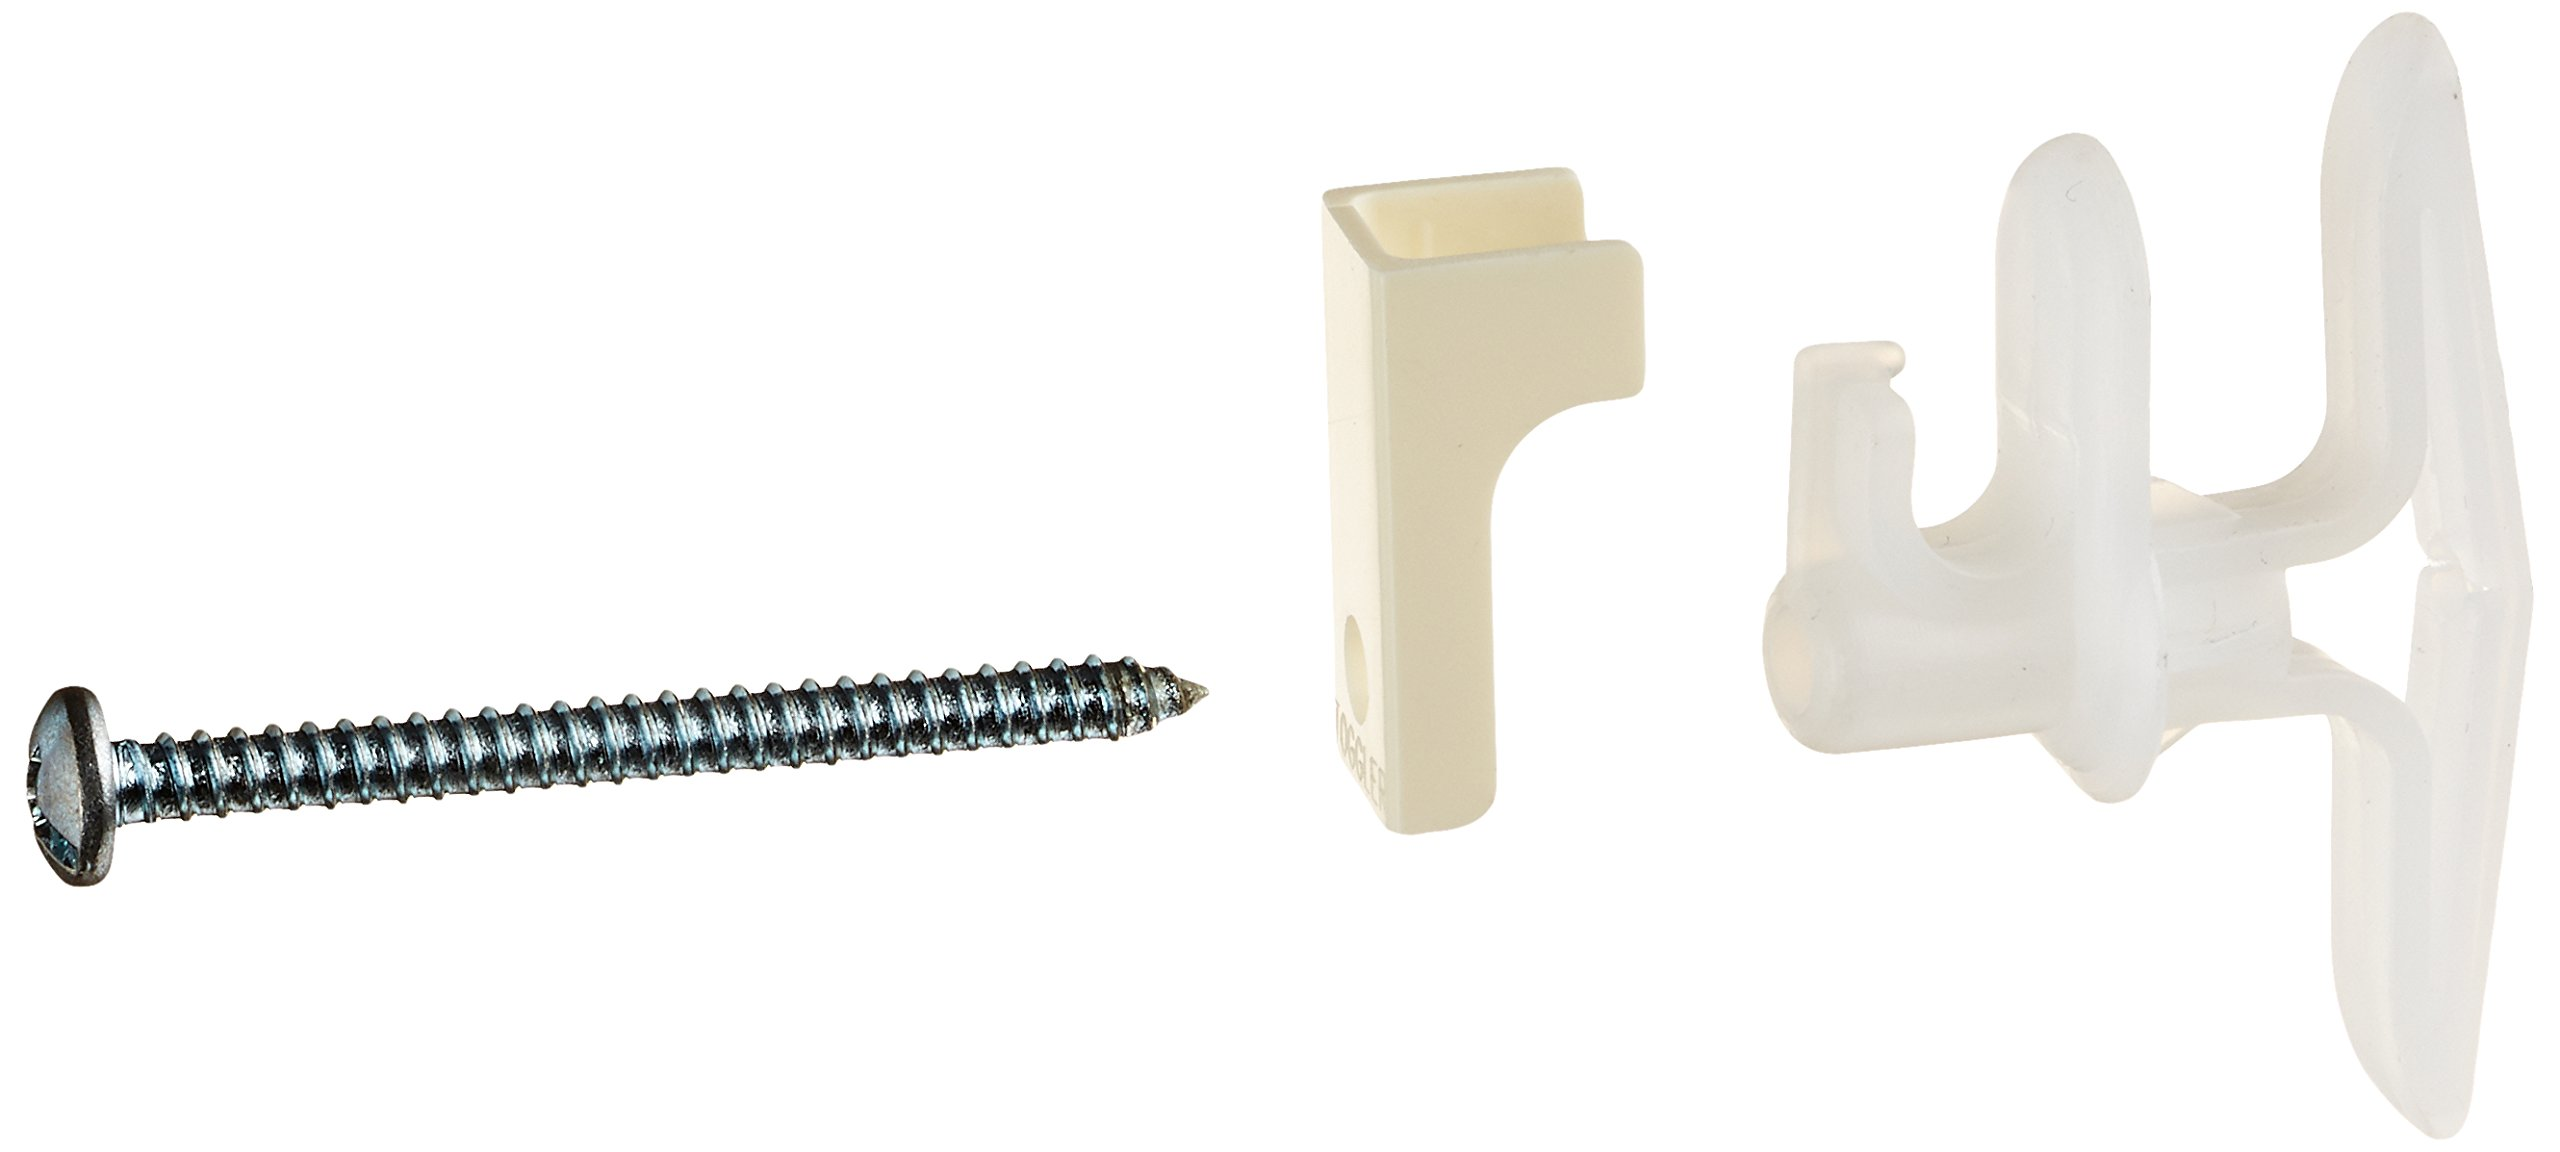 "TOGGLER TBW Wire-Shelf Anchor with Screws, Made in US, 3/8"" to 1/2"" Grip Range, For #8 x 1-3/4"" Fastener Size (Pack of 5)"